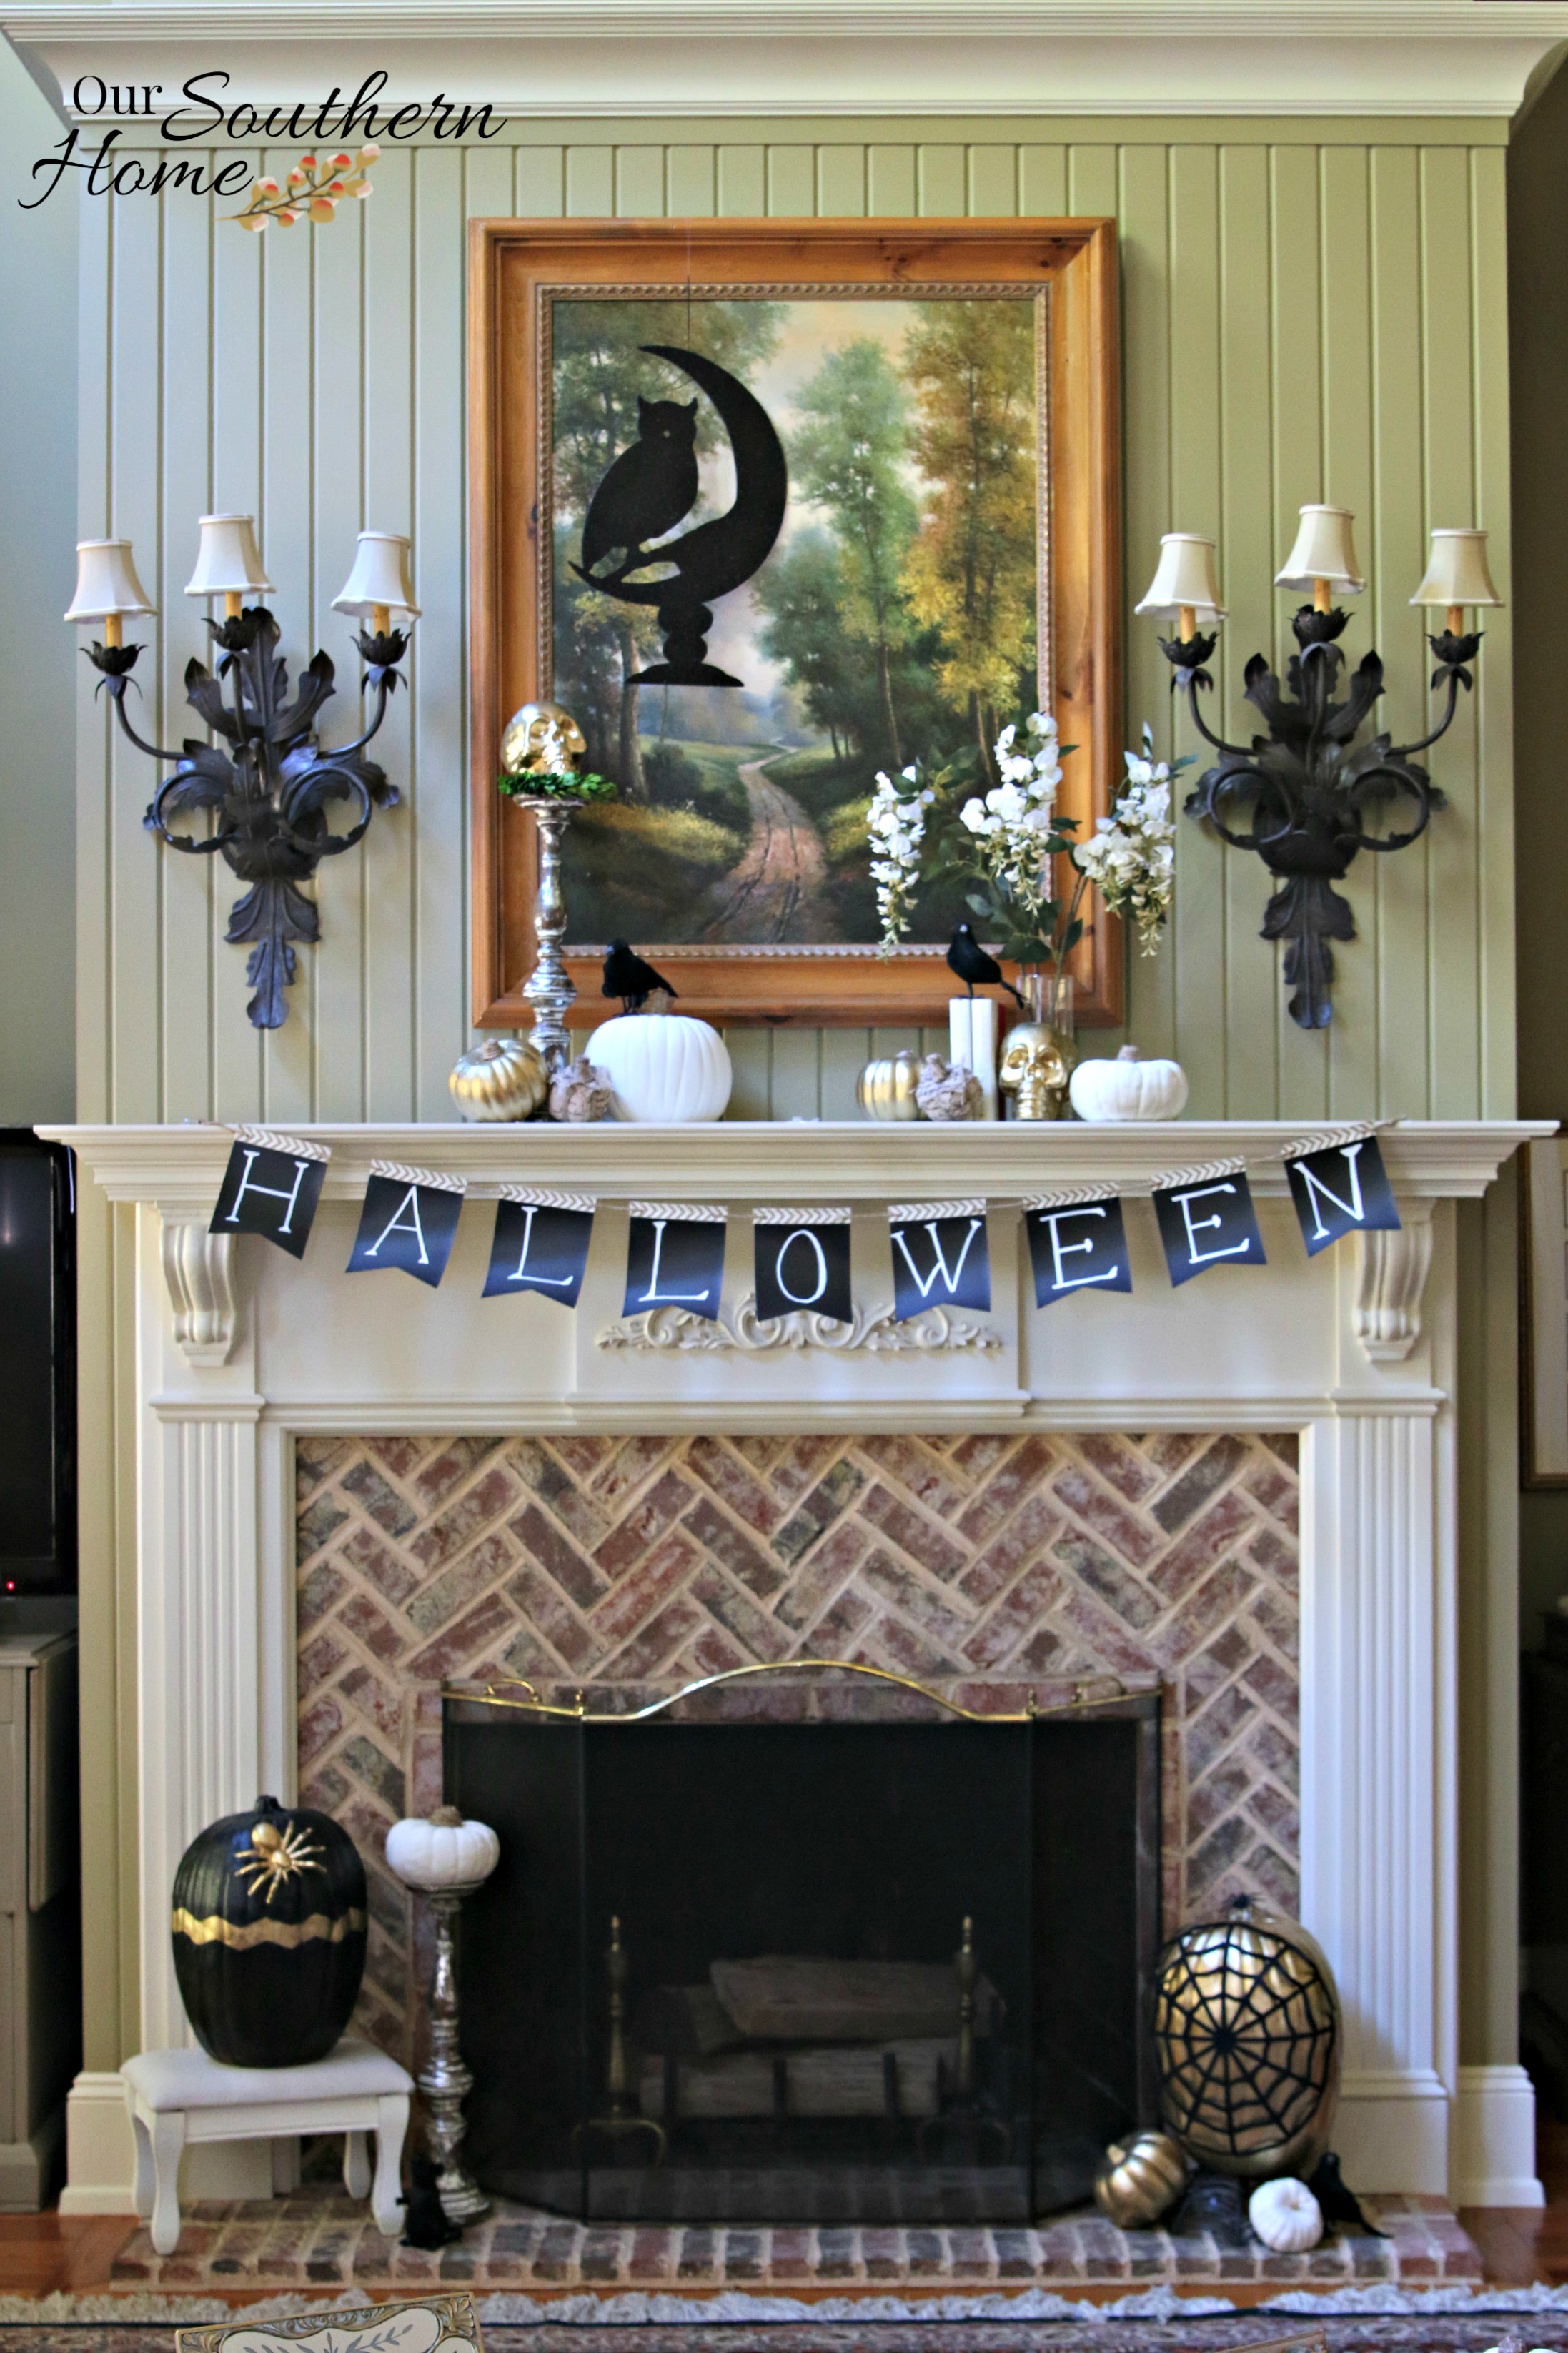 Interior Decorating - Our Southern Home